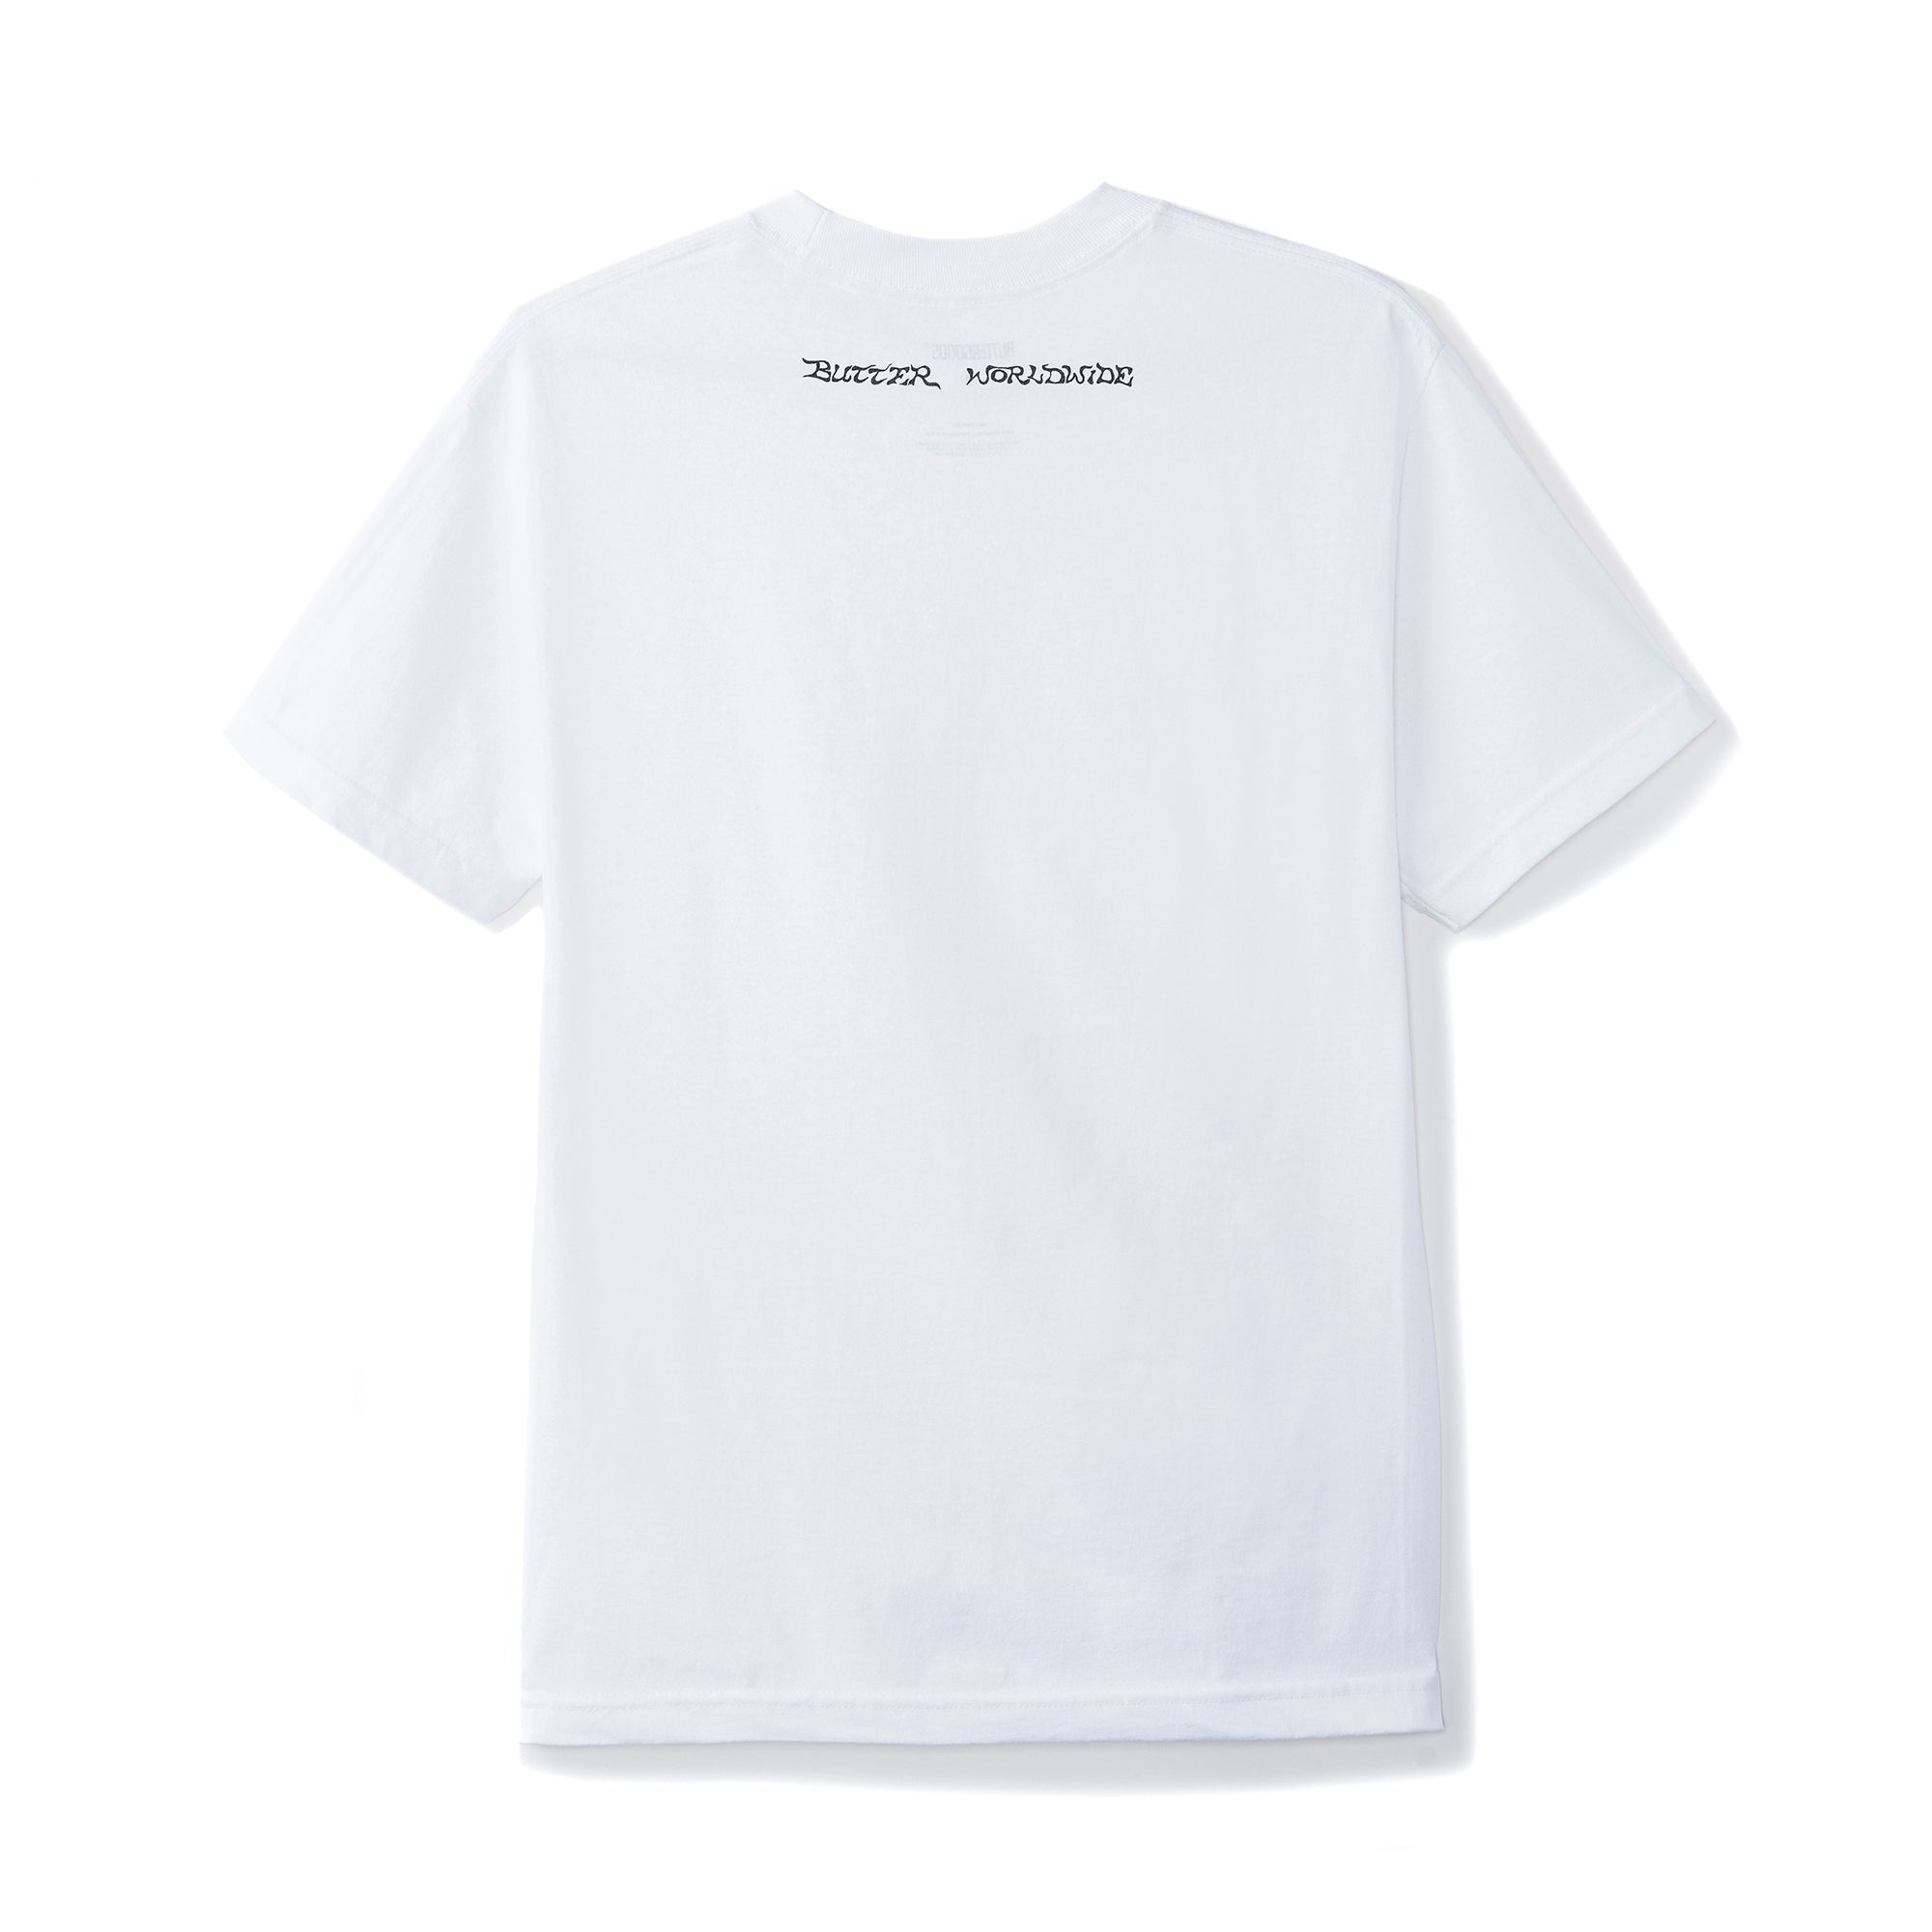 Butter Goods Transform Tee Product Photo #2